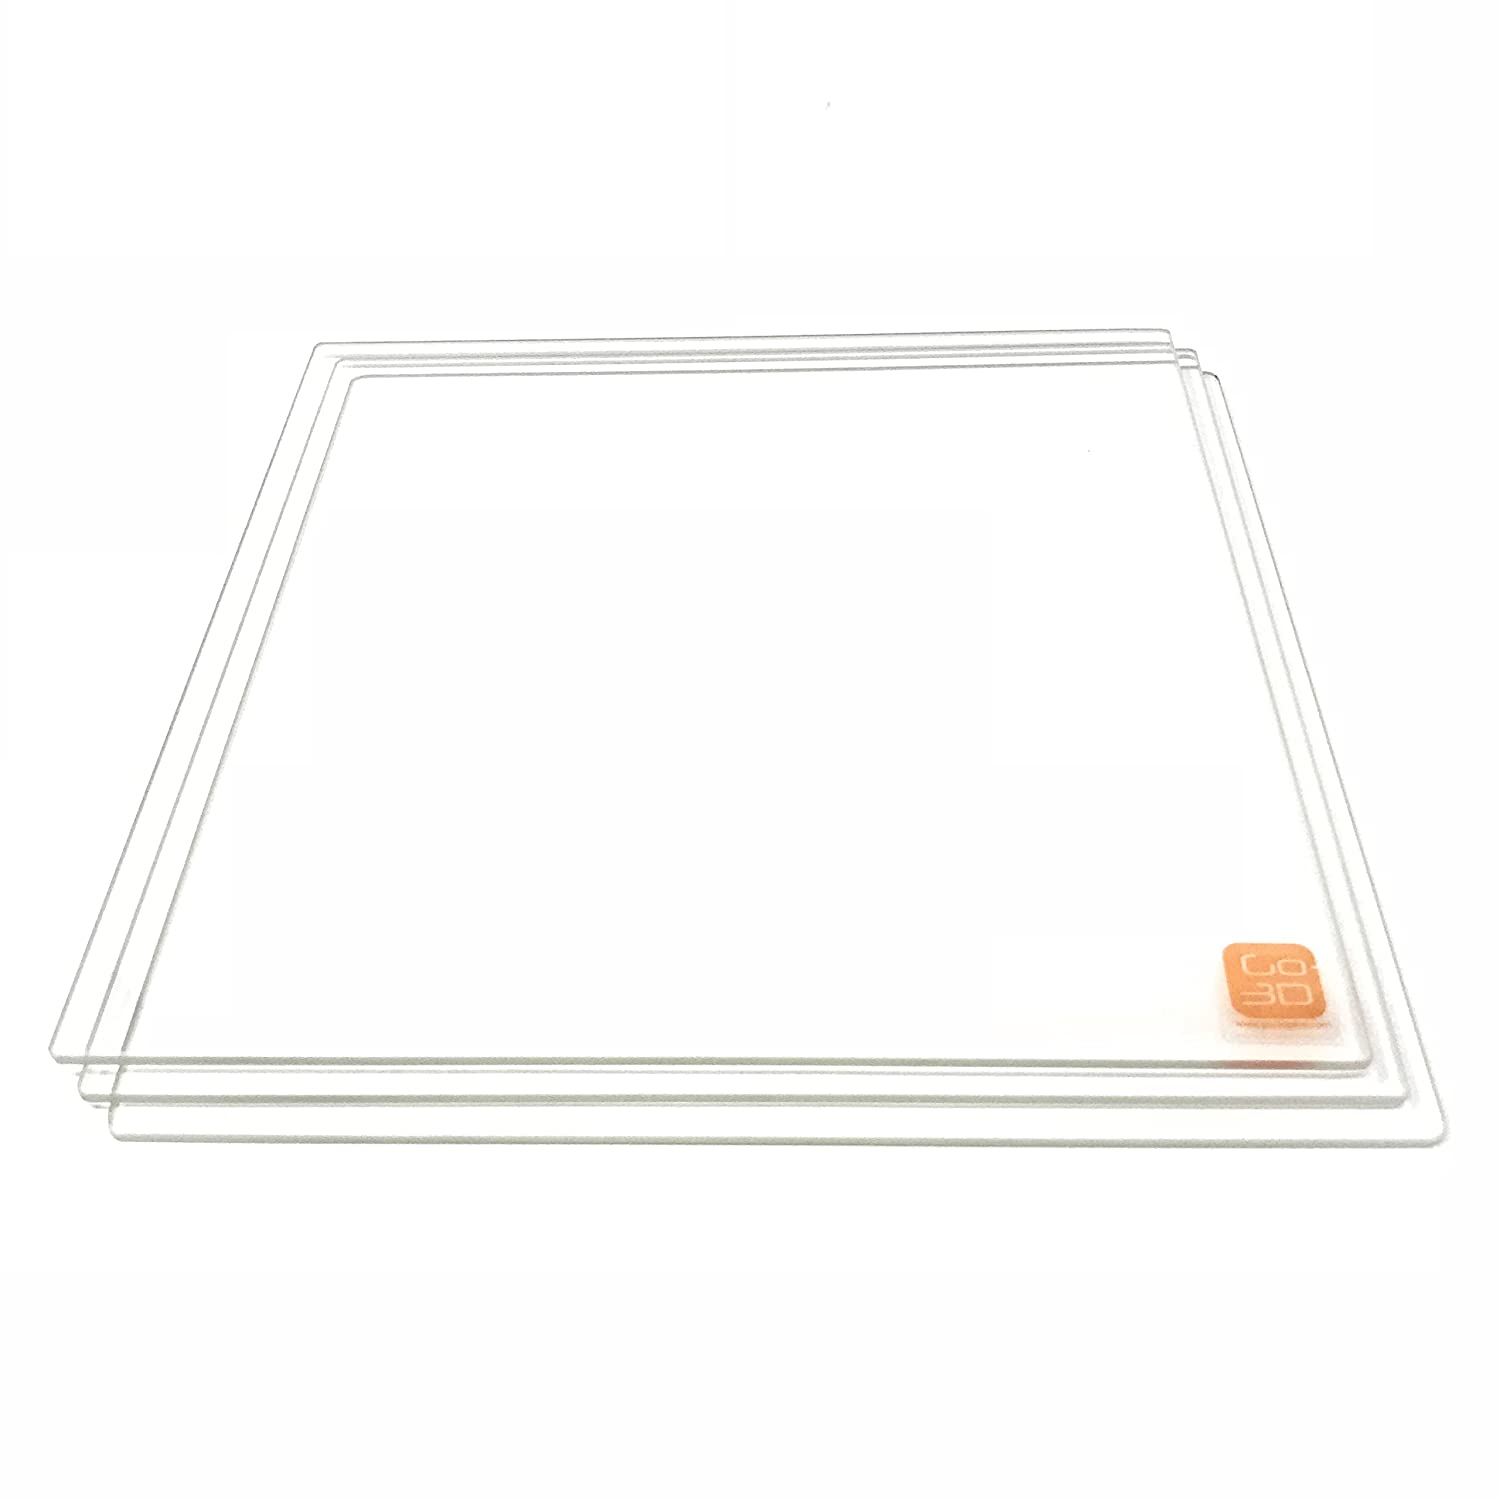 GO-3D PRINT 220mm x Challenge the lowest price of Japan Borosilicate Glass Po Plate Ranking TOP1 Bed Flat w